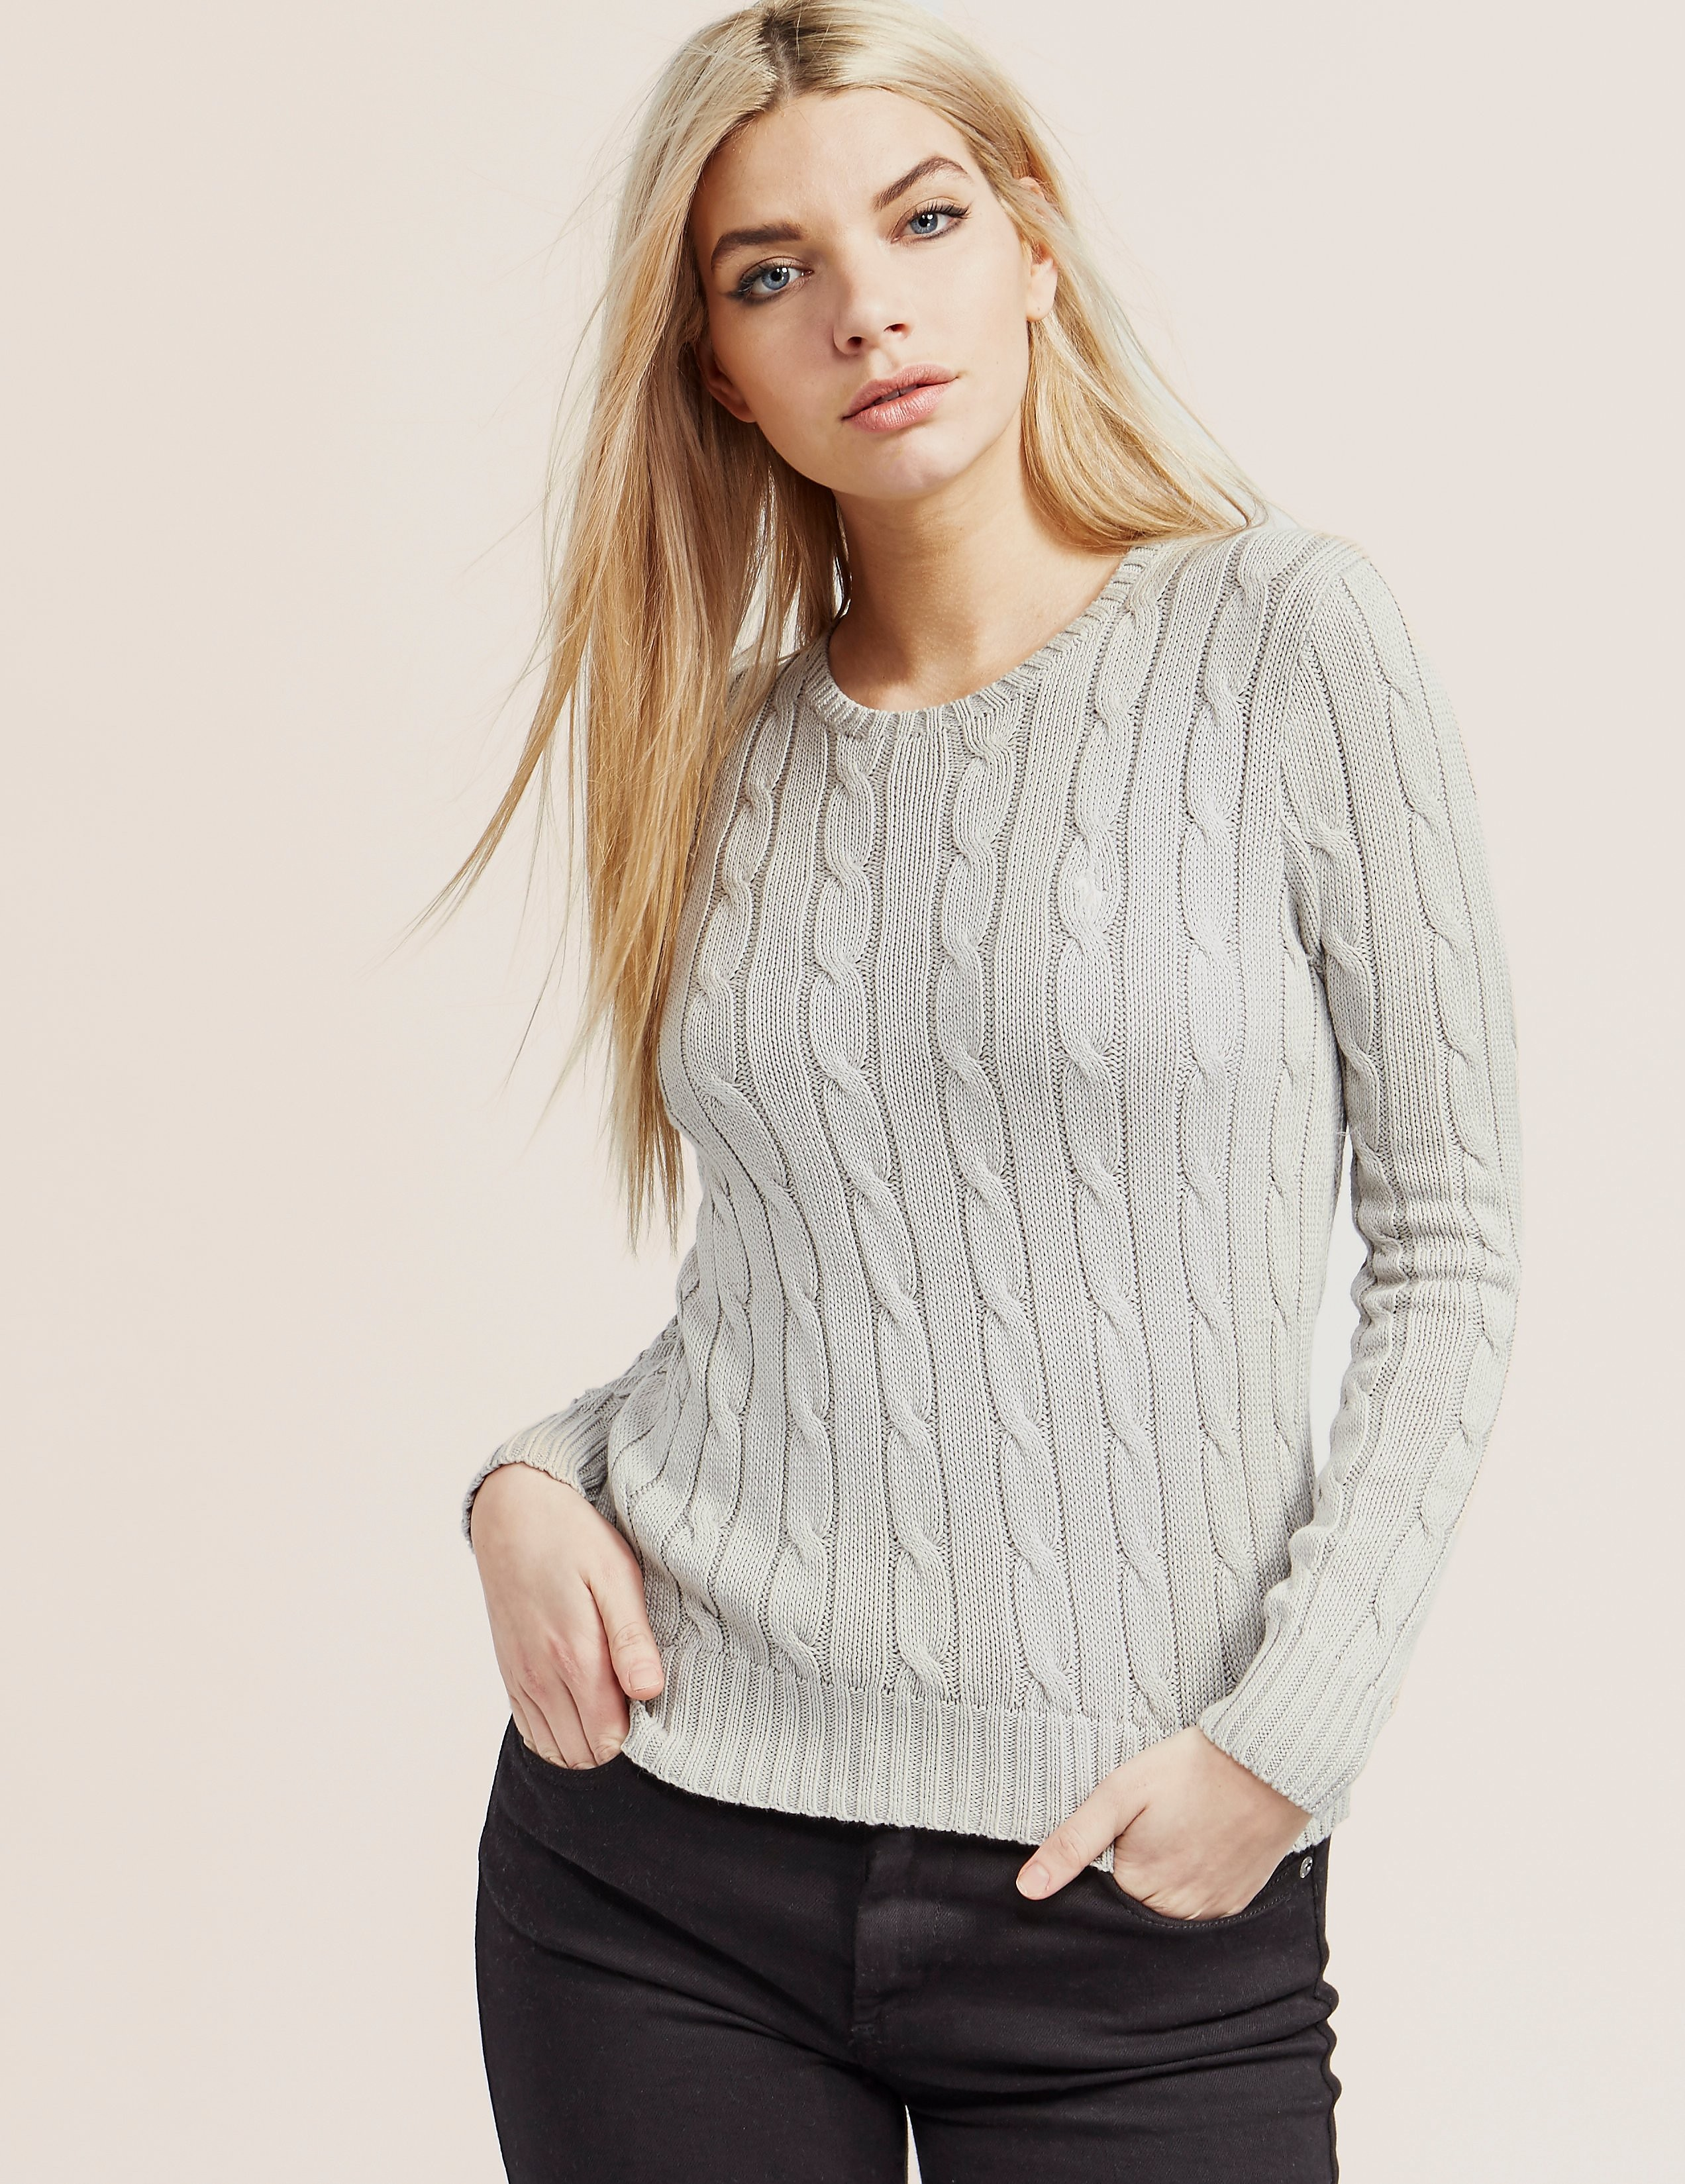 Polo Ralph Lauren Julianna Crew Sweater